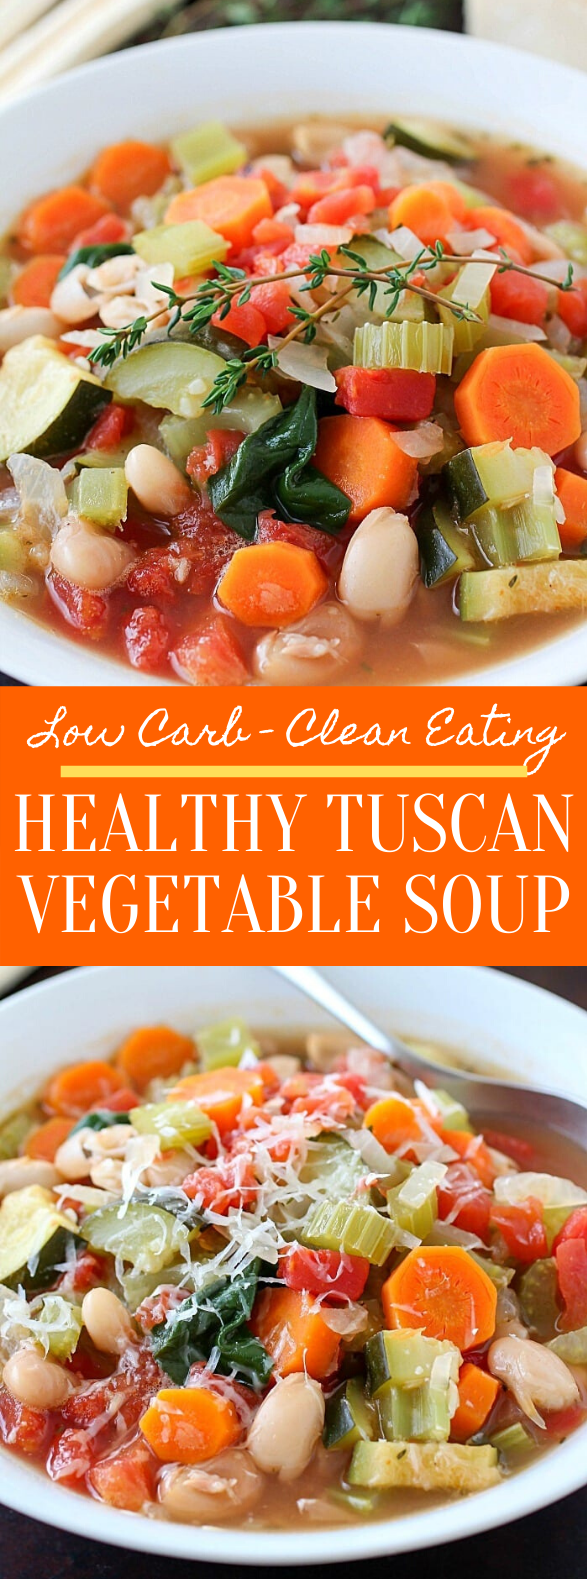 Healthy Tuscan Vegetable Soup #dinner #cleaneating